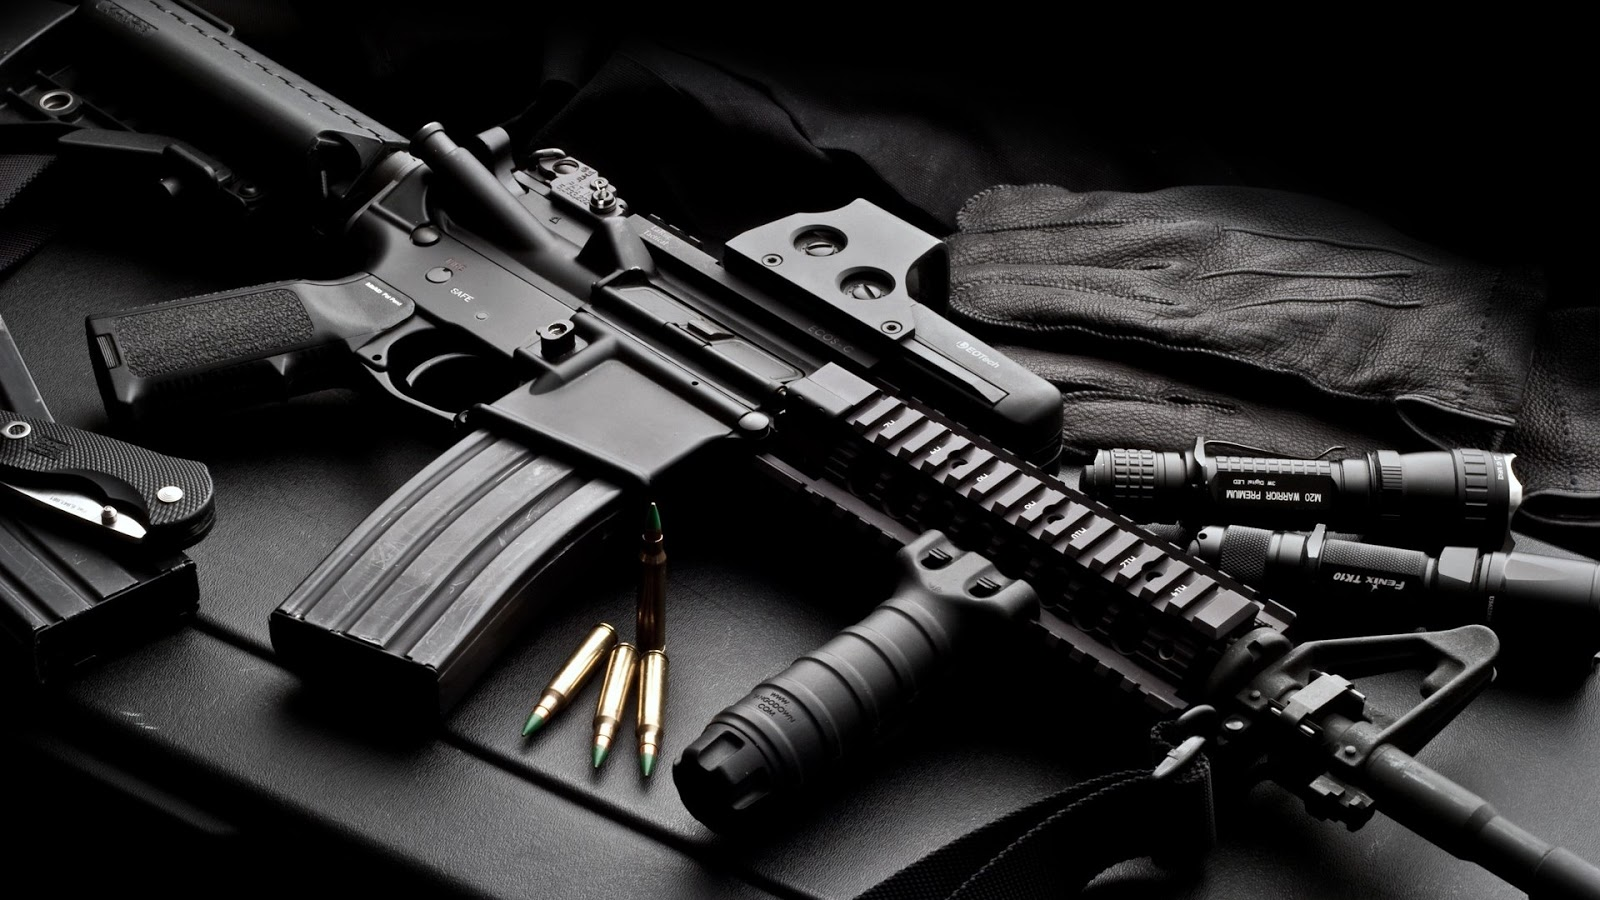 Benue Govt. committed to amnesty for possessors of illegal arms: Official